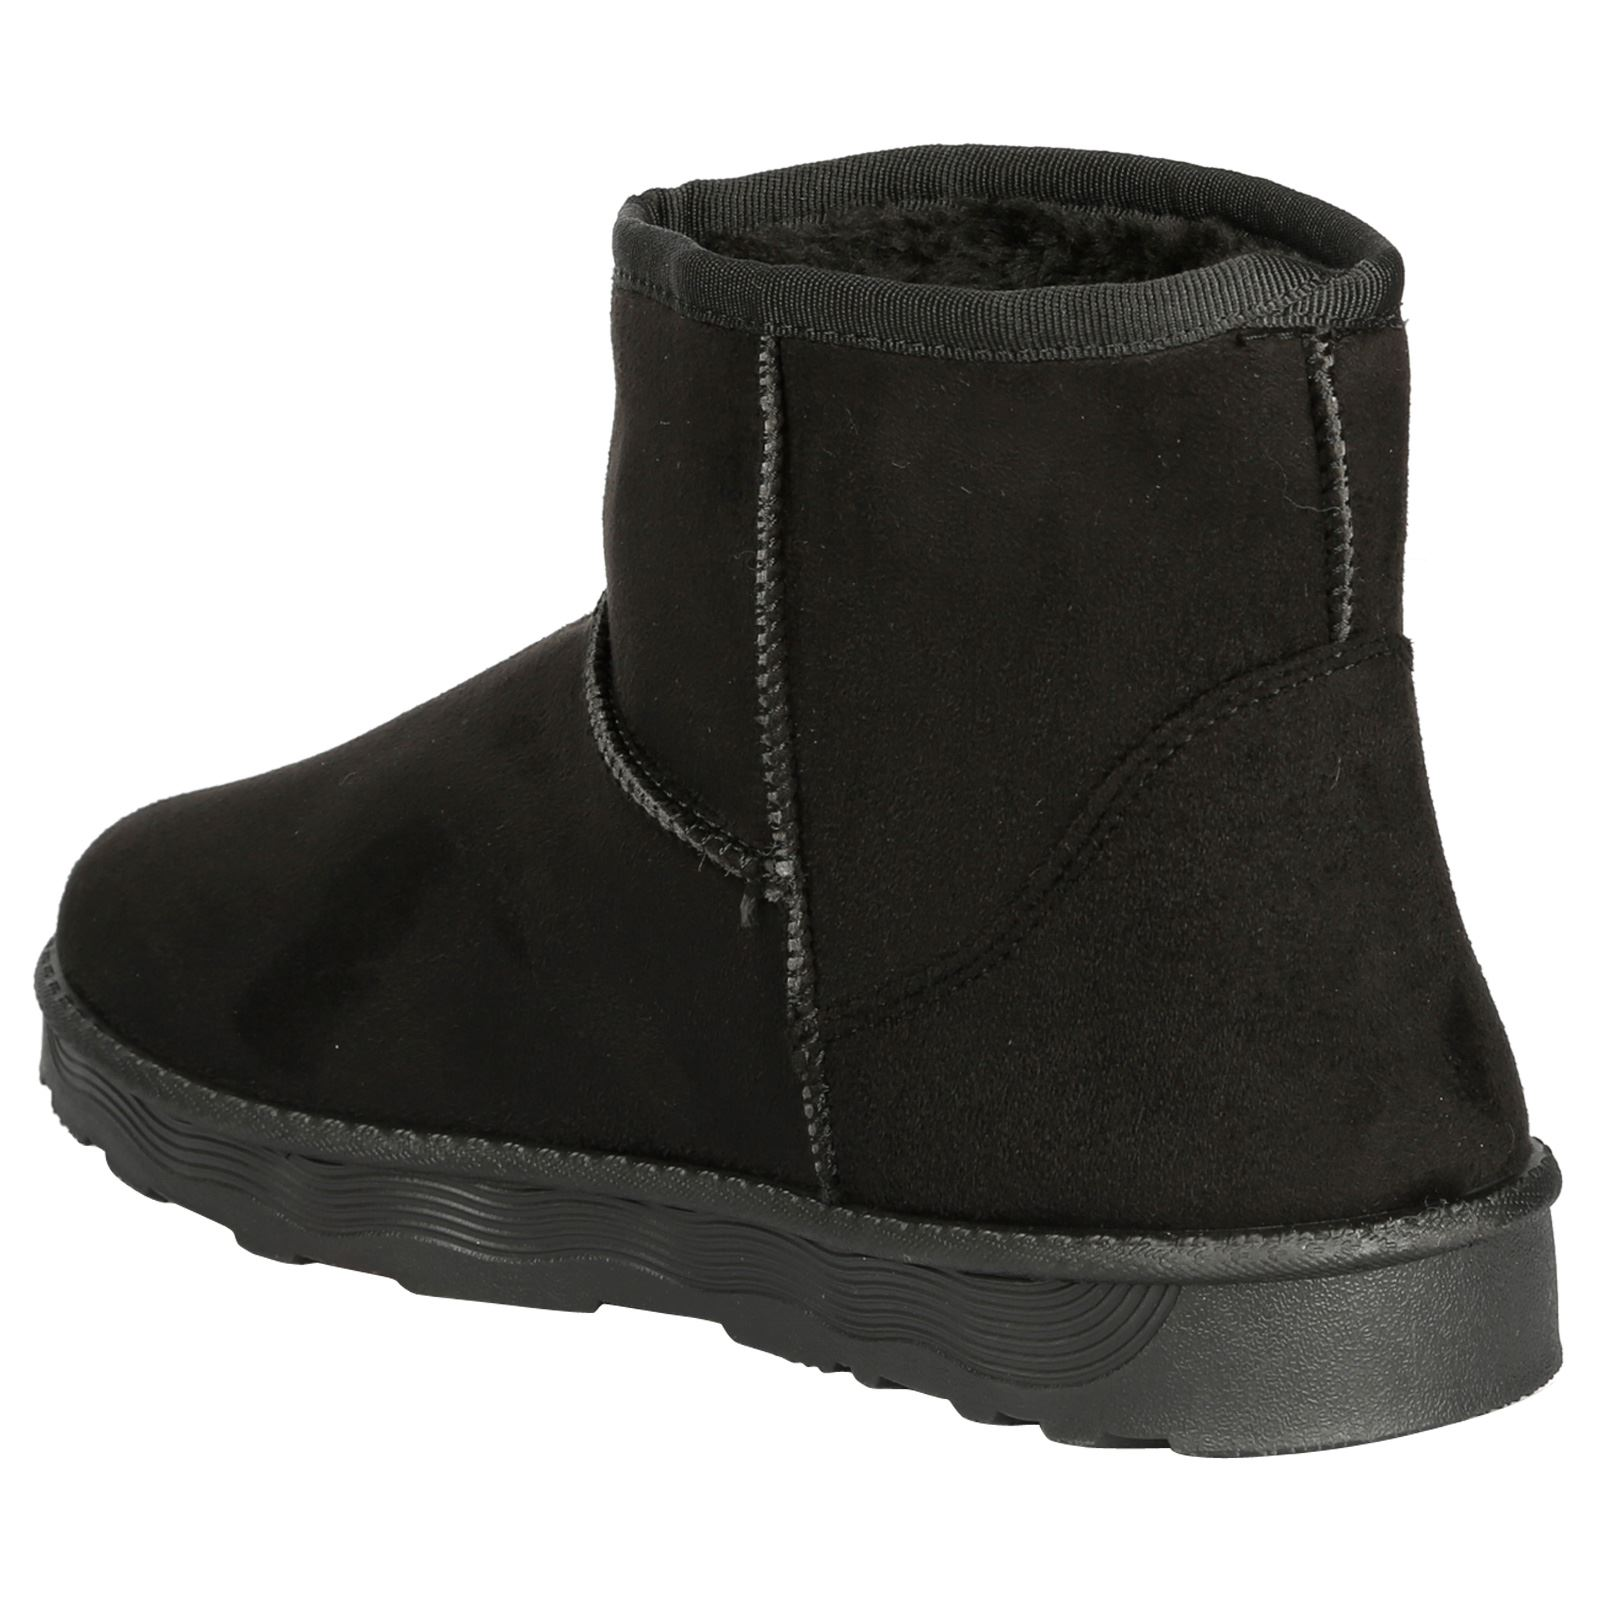 Naomi-Womens-Platfrom-Flat-Fur-Lined-Pull-On-Snug-Snow-Boots-Casual-Ladies-Size thumbnail 5